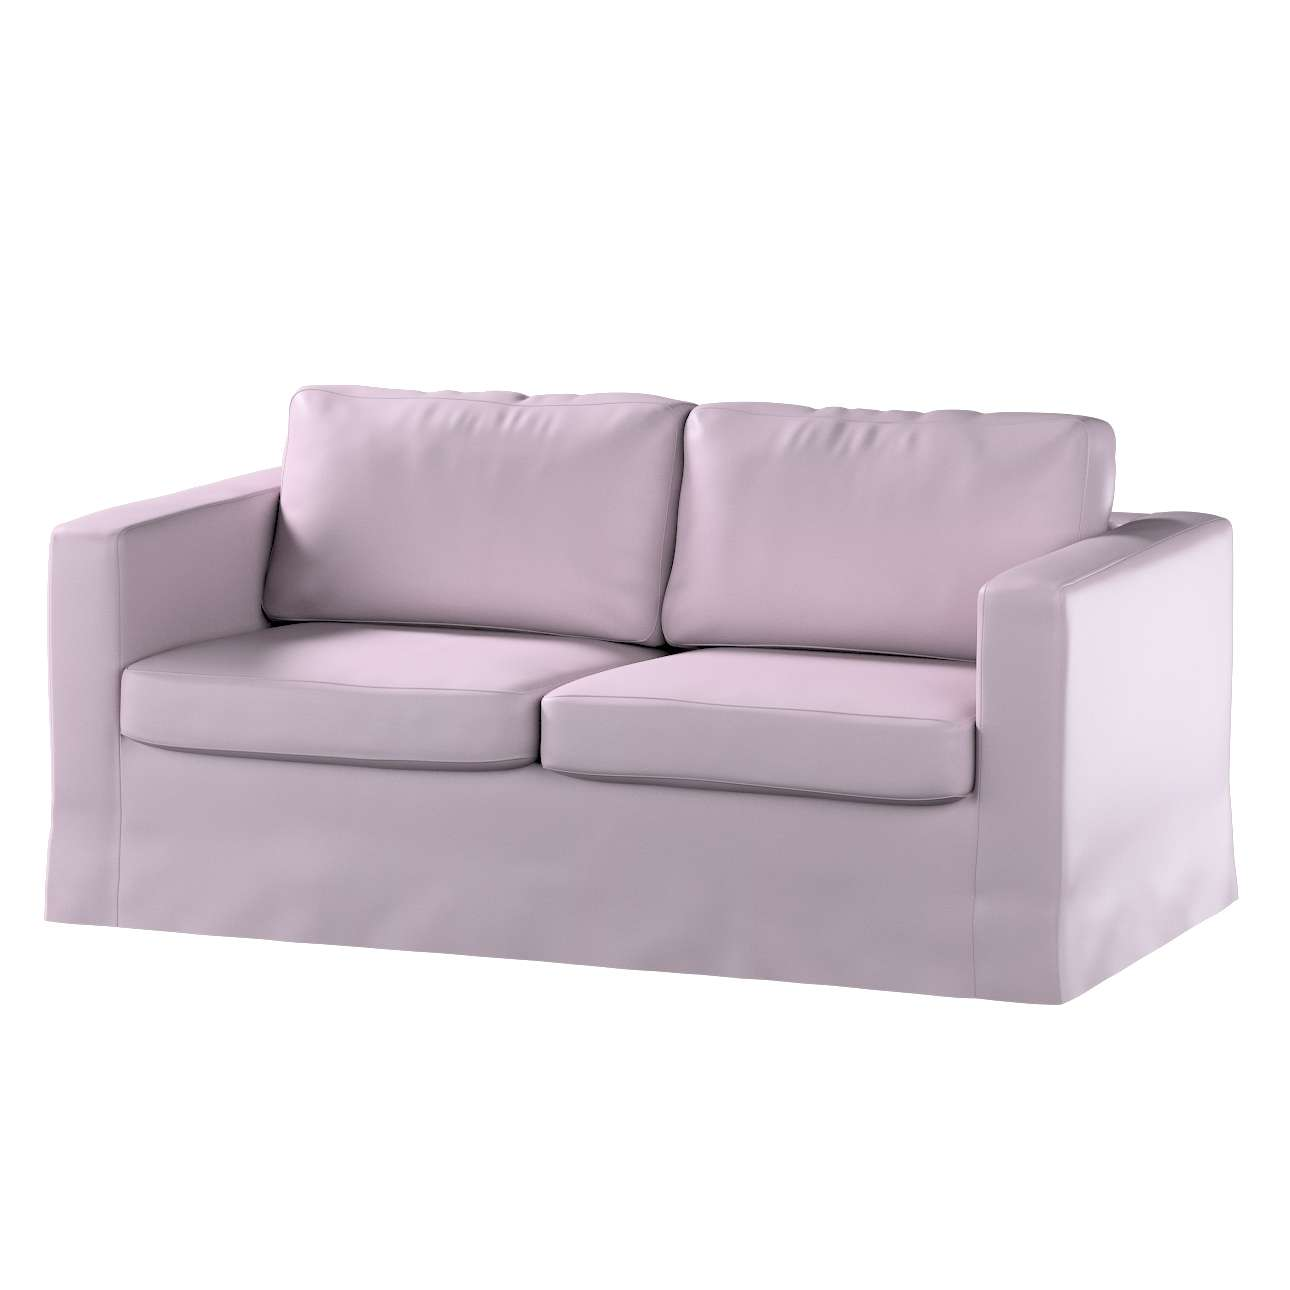 Floor length Karlstad 2-seater sofa cover in collection Madrid, fabric: 160-53